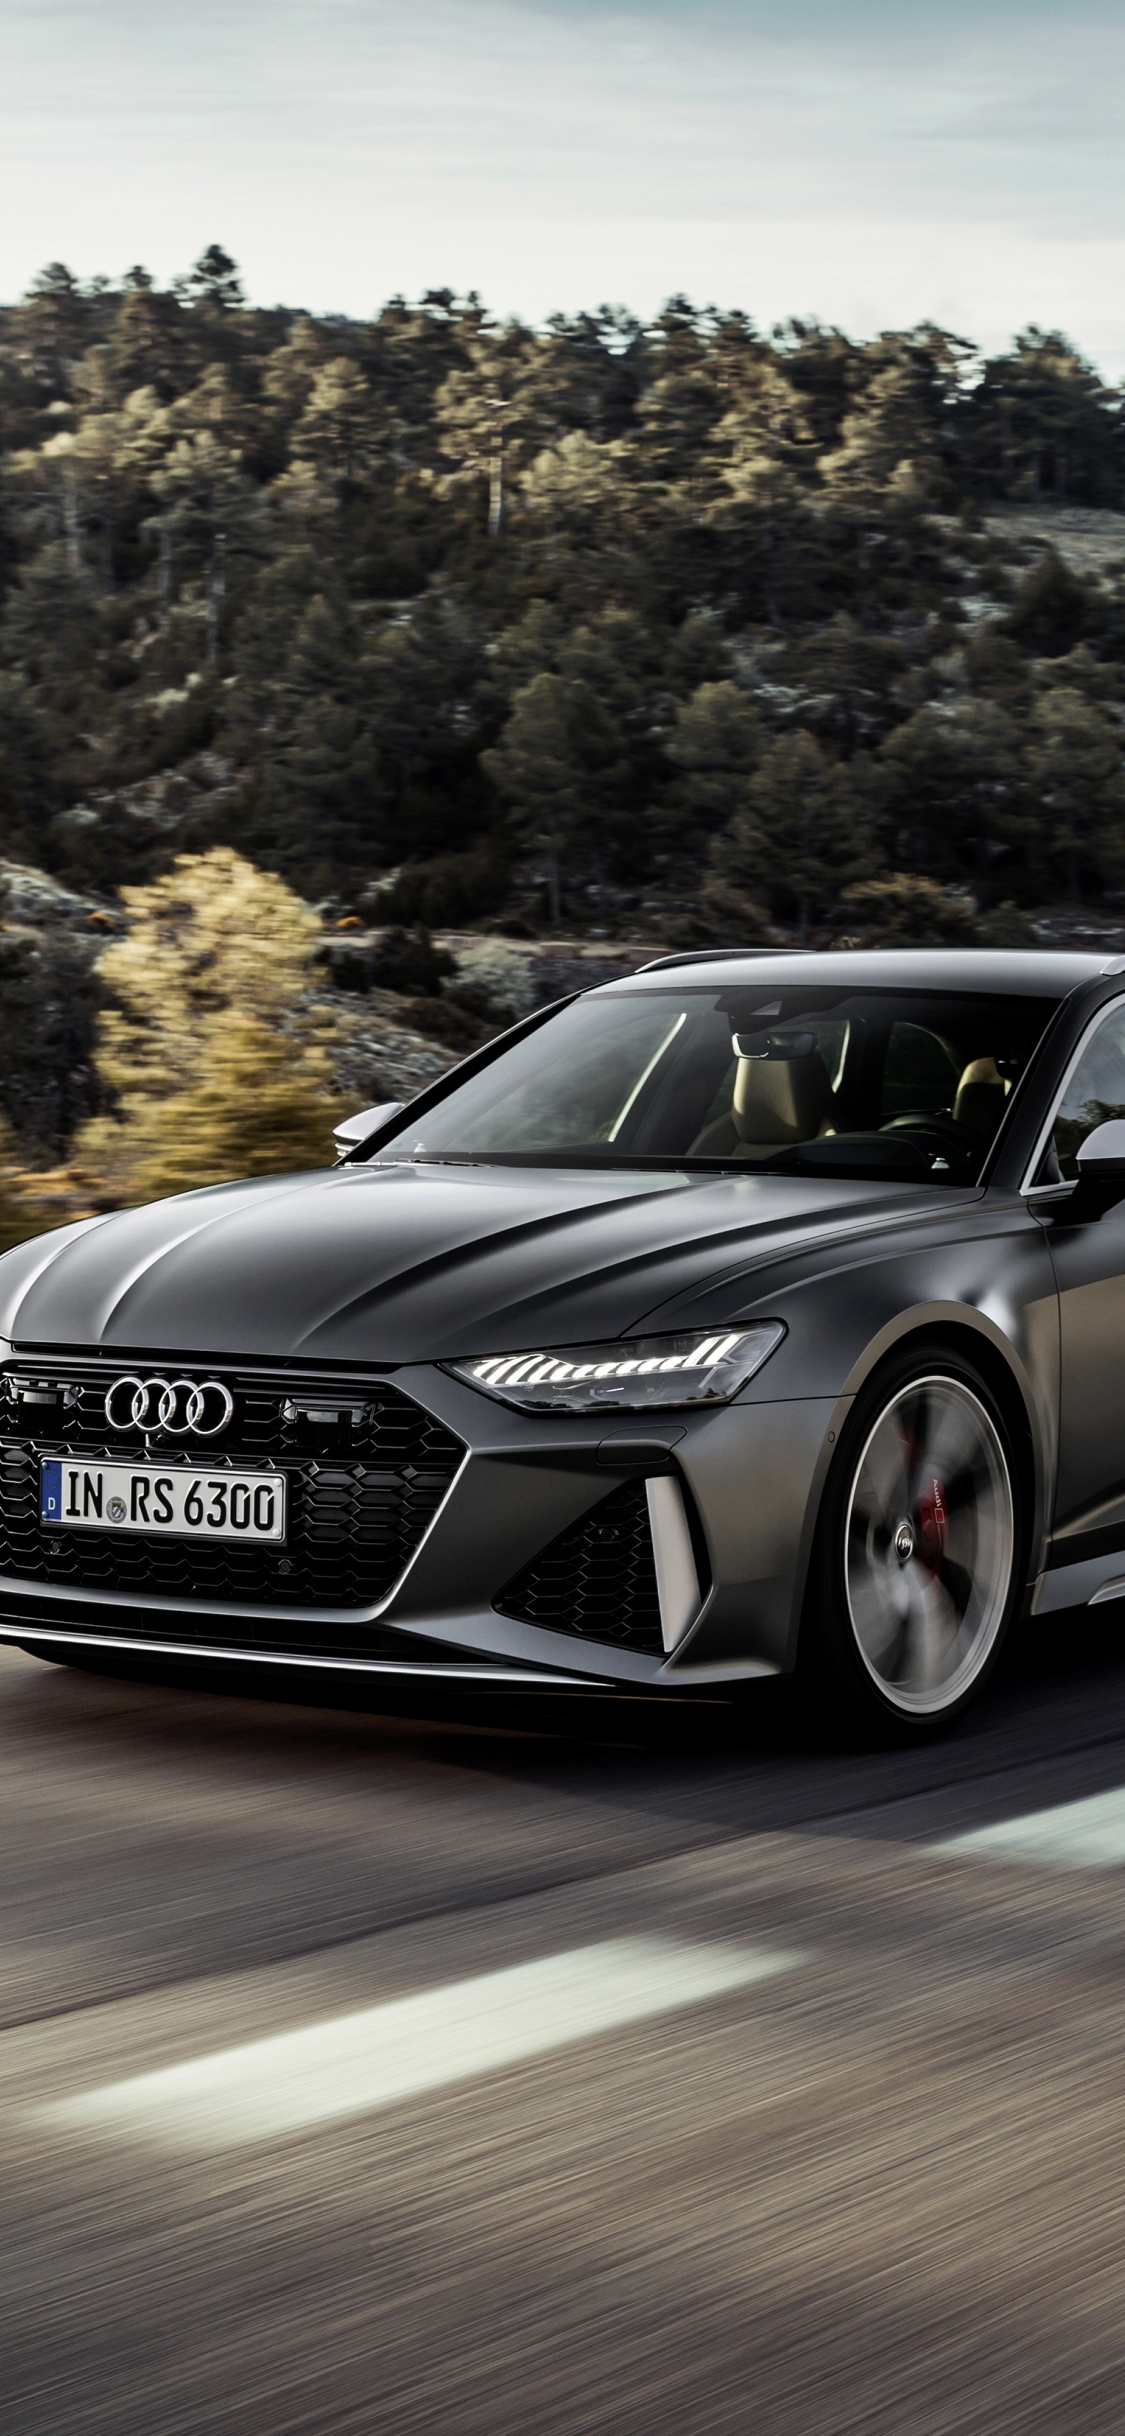 Audi Rs6 2020 3193301 Hd Wallpaper Backgrounds Download